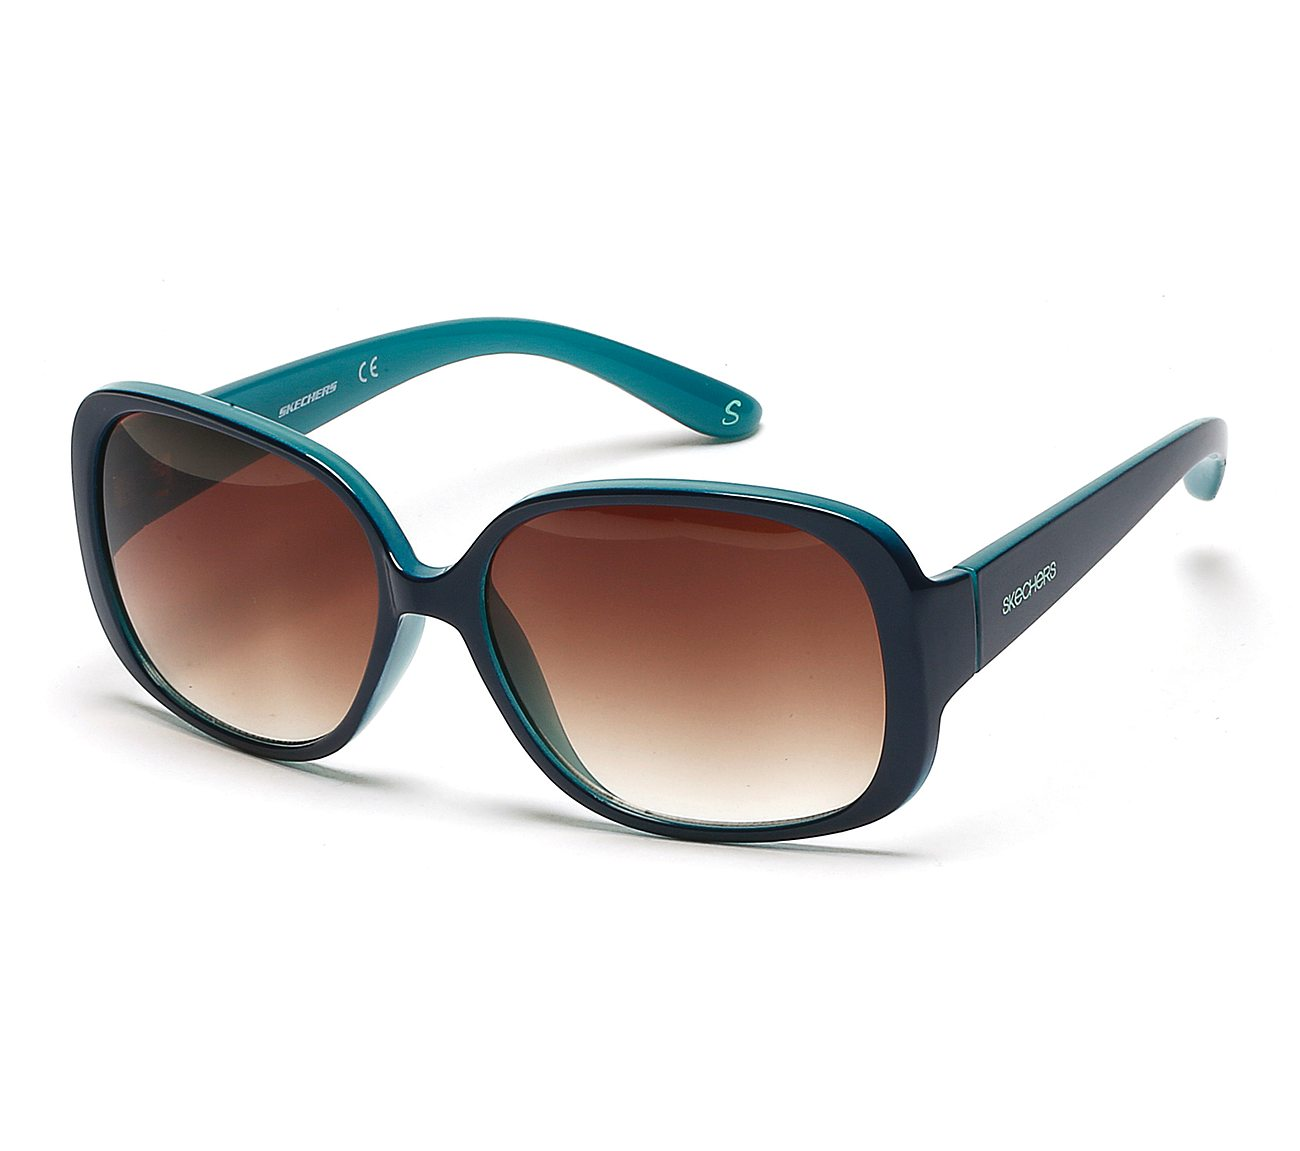 skechers sunglasses review